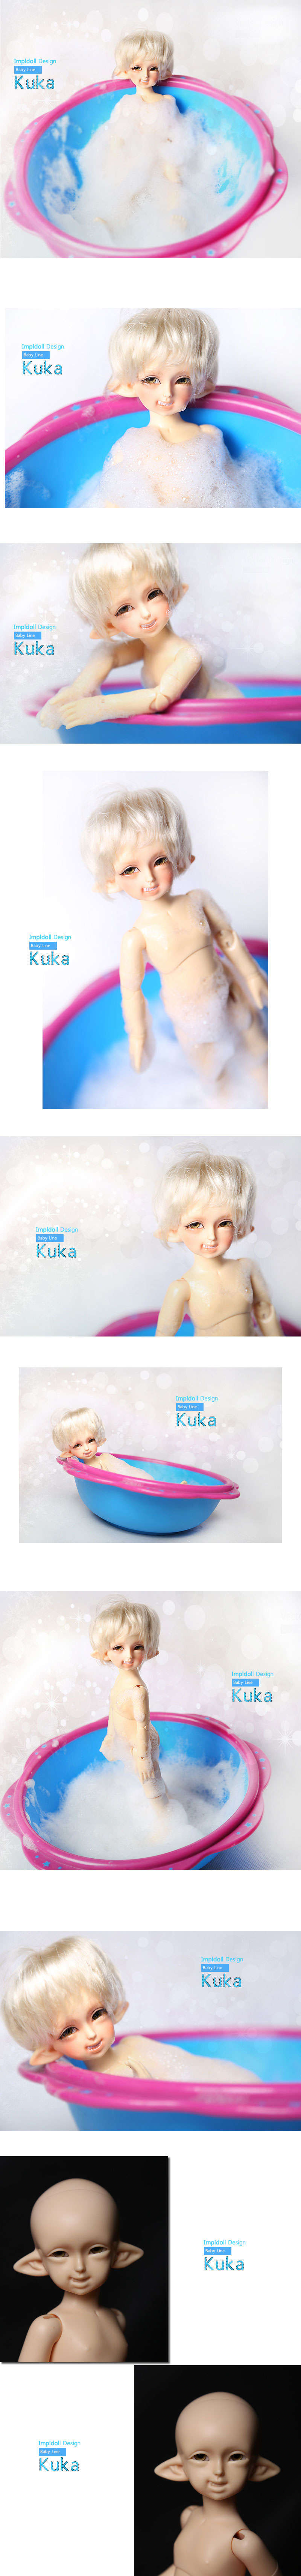 BJD Kuka 26cm Boy Ball-jointed Doll